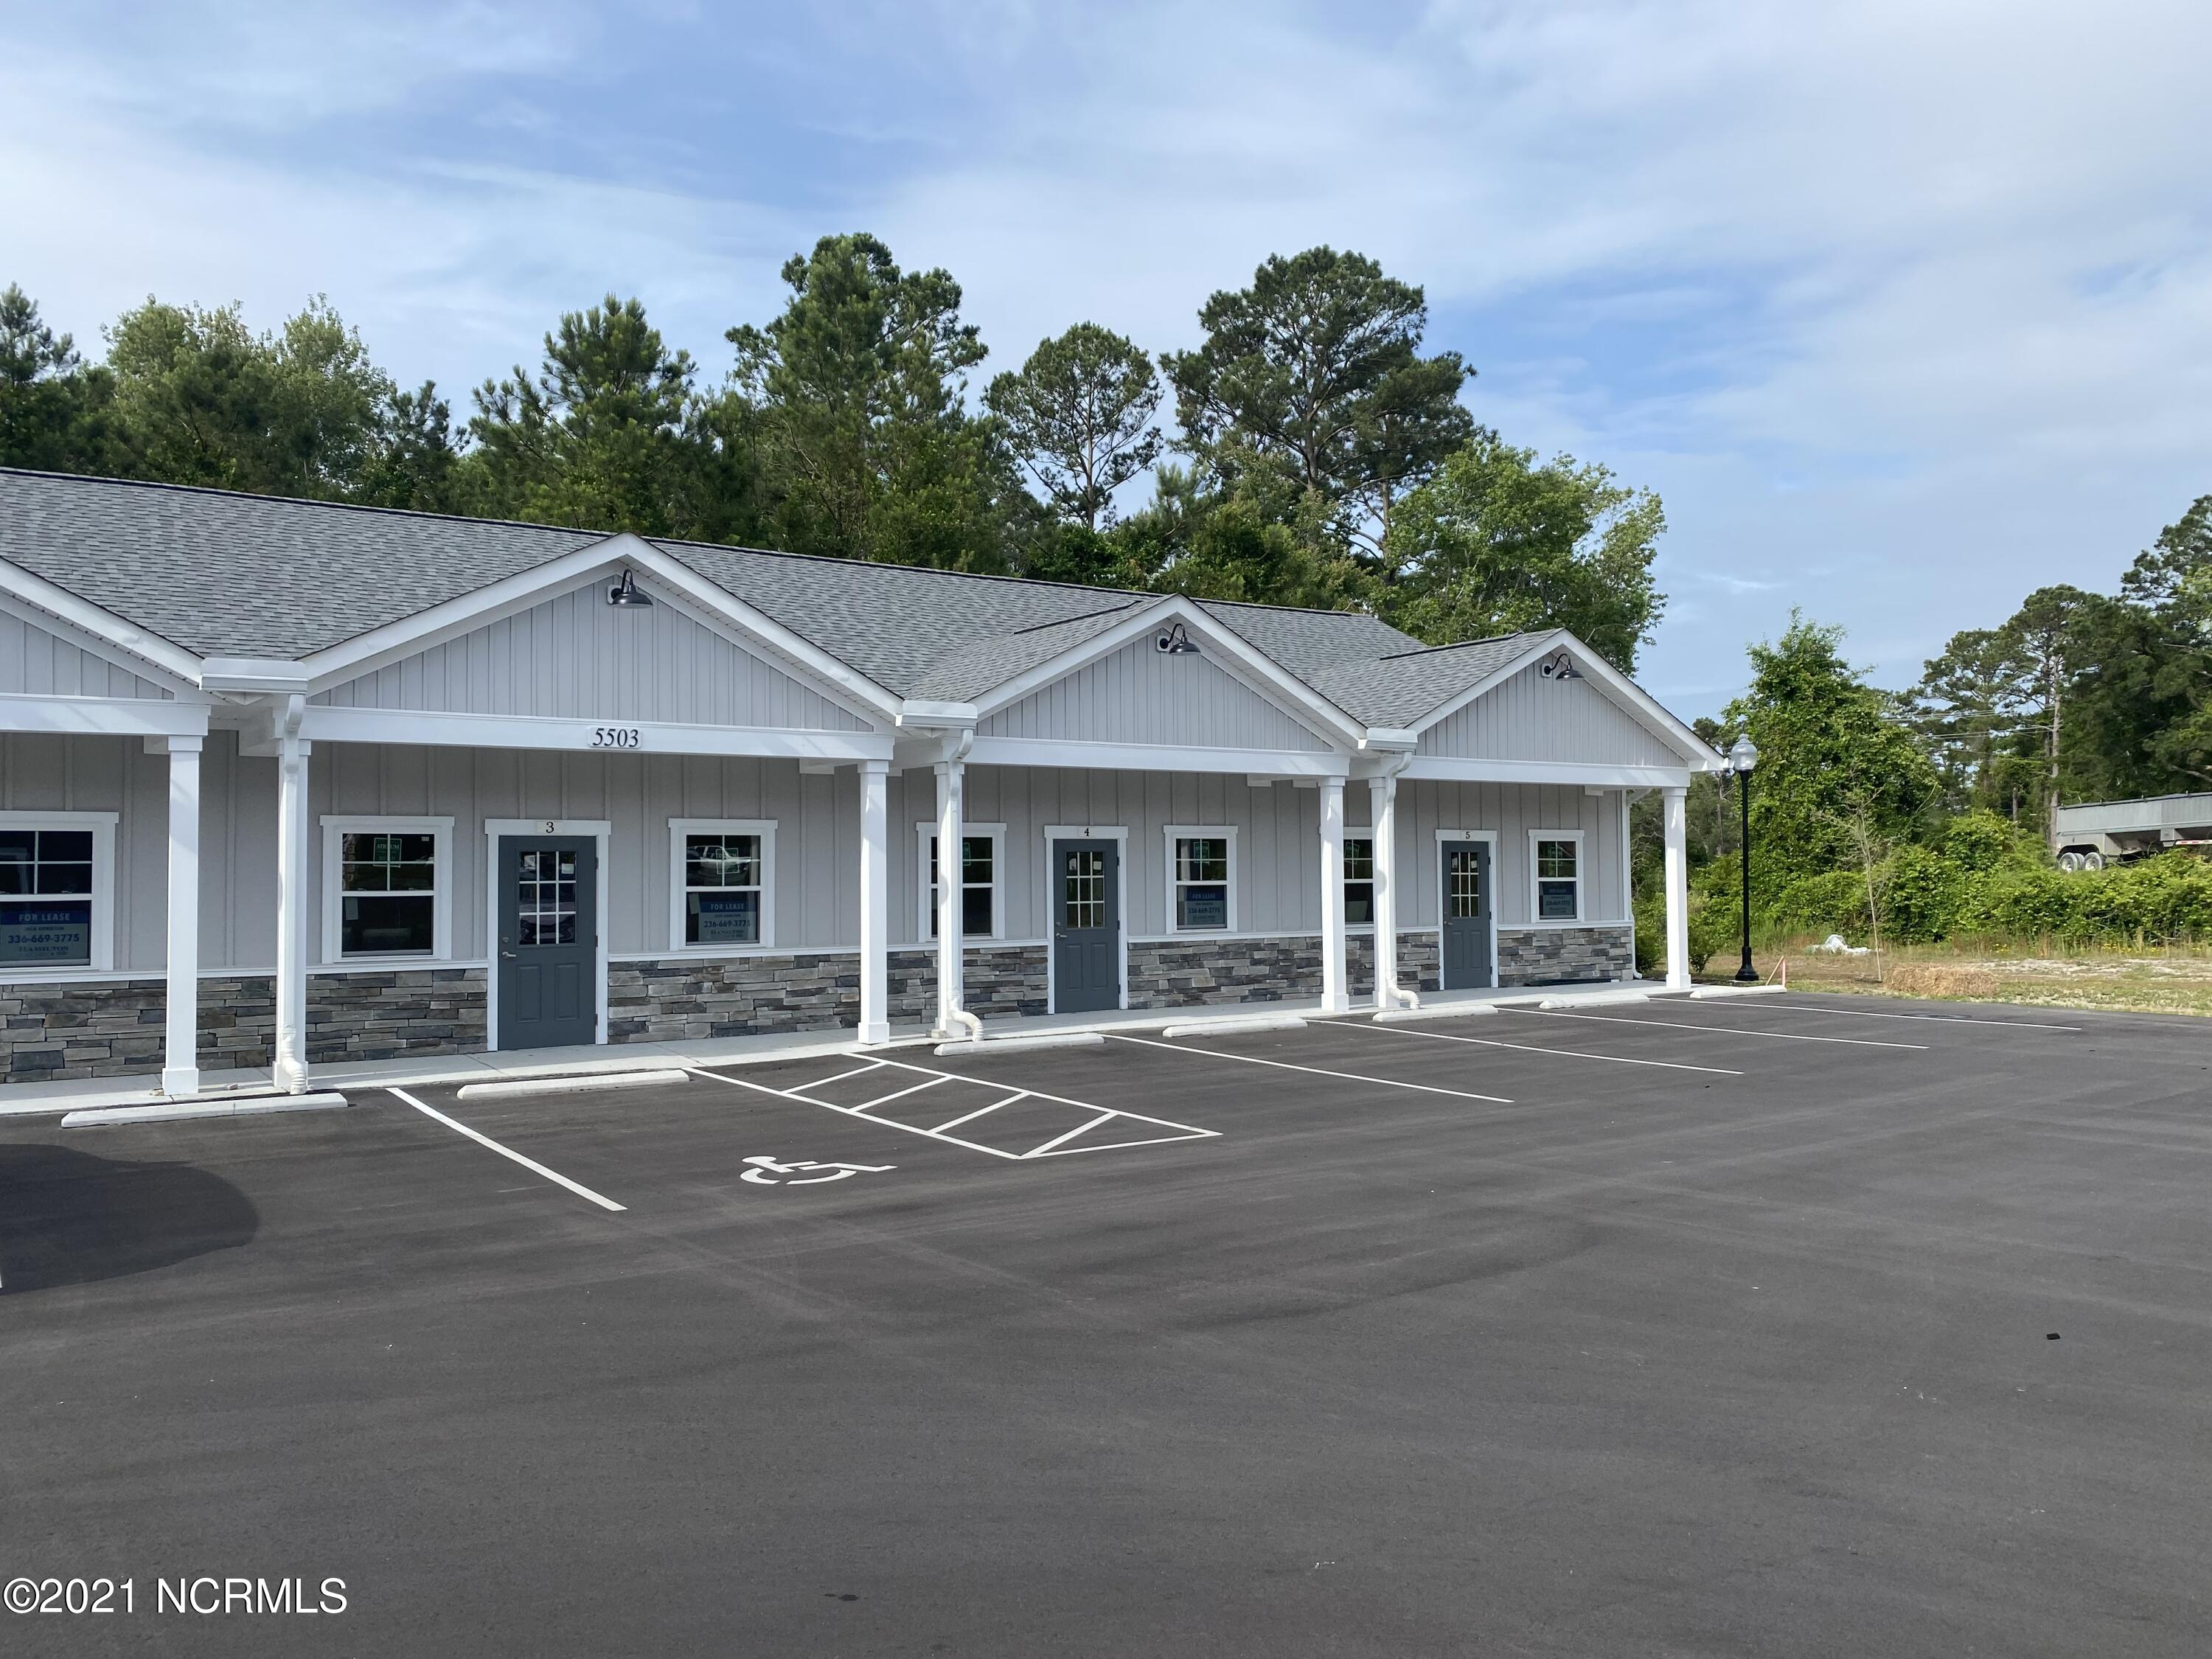 Terrific, convenient location for your small business. Fabulous space offering 733SF, with a private bath. Roughed in, for tenant to upfit to their needs. Owner will give a $10,000 upfit reimbursement after completion. 3 year initial lease term. Call listing agent for more details.